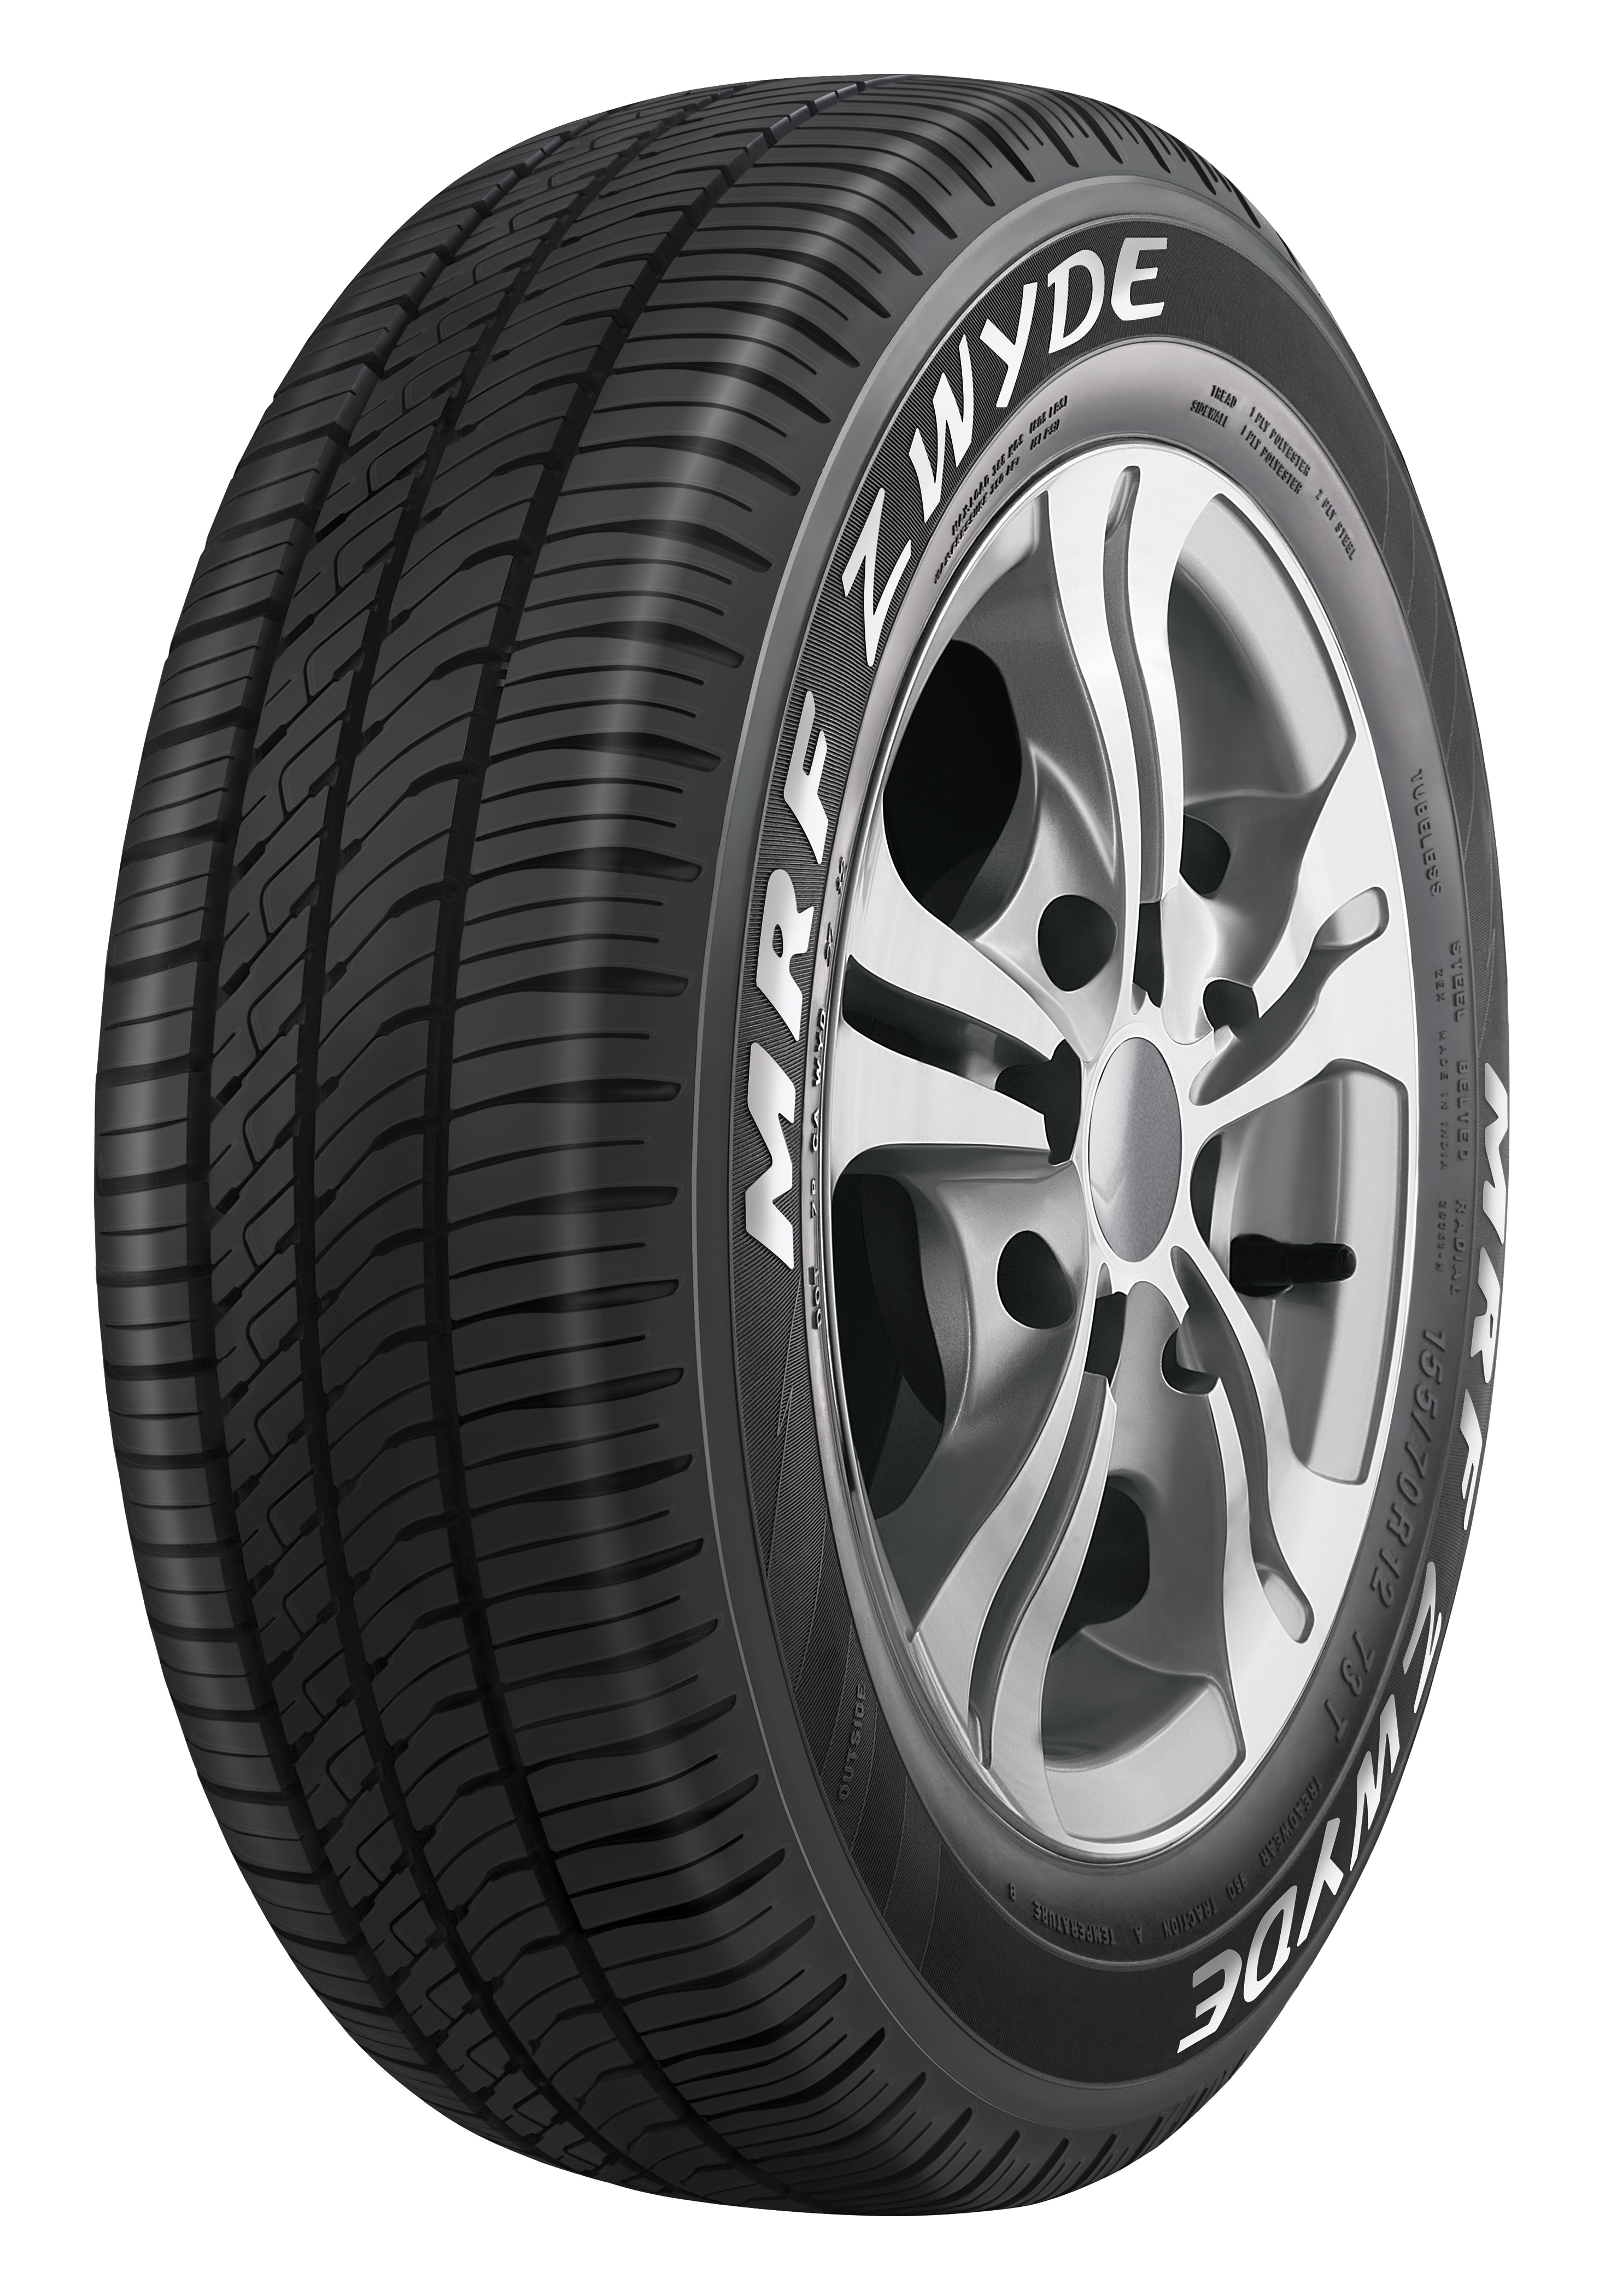 Honda Financial Services Number >> MRF Tyres - ZWYDE